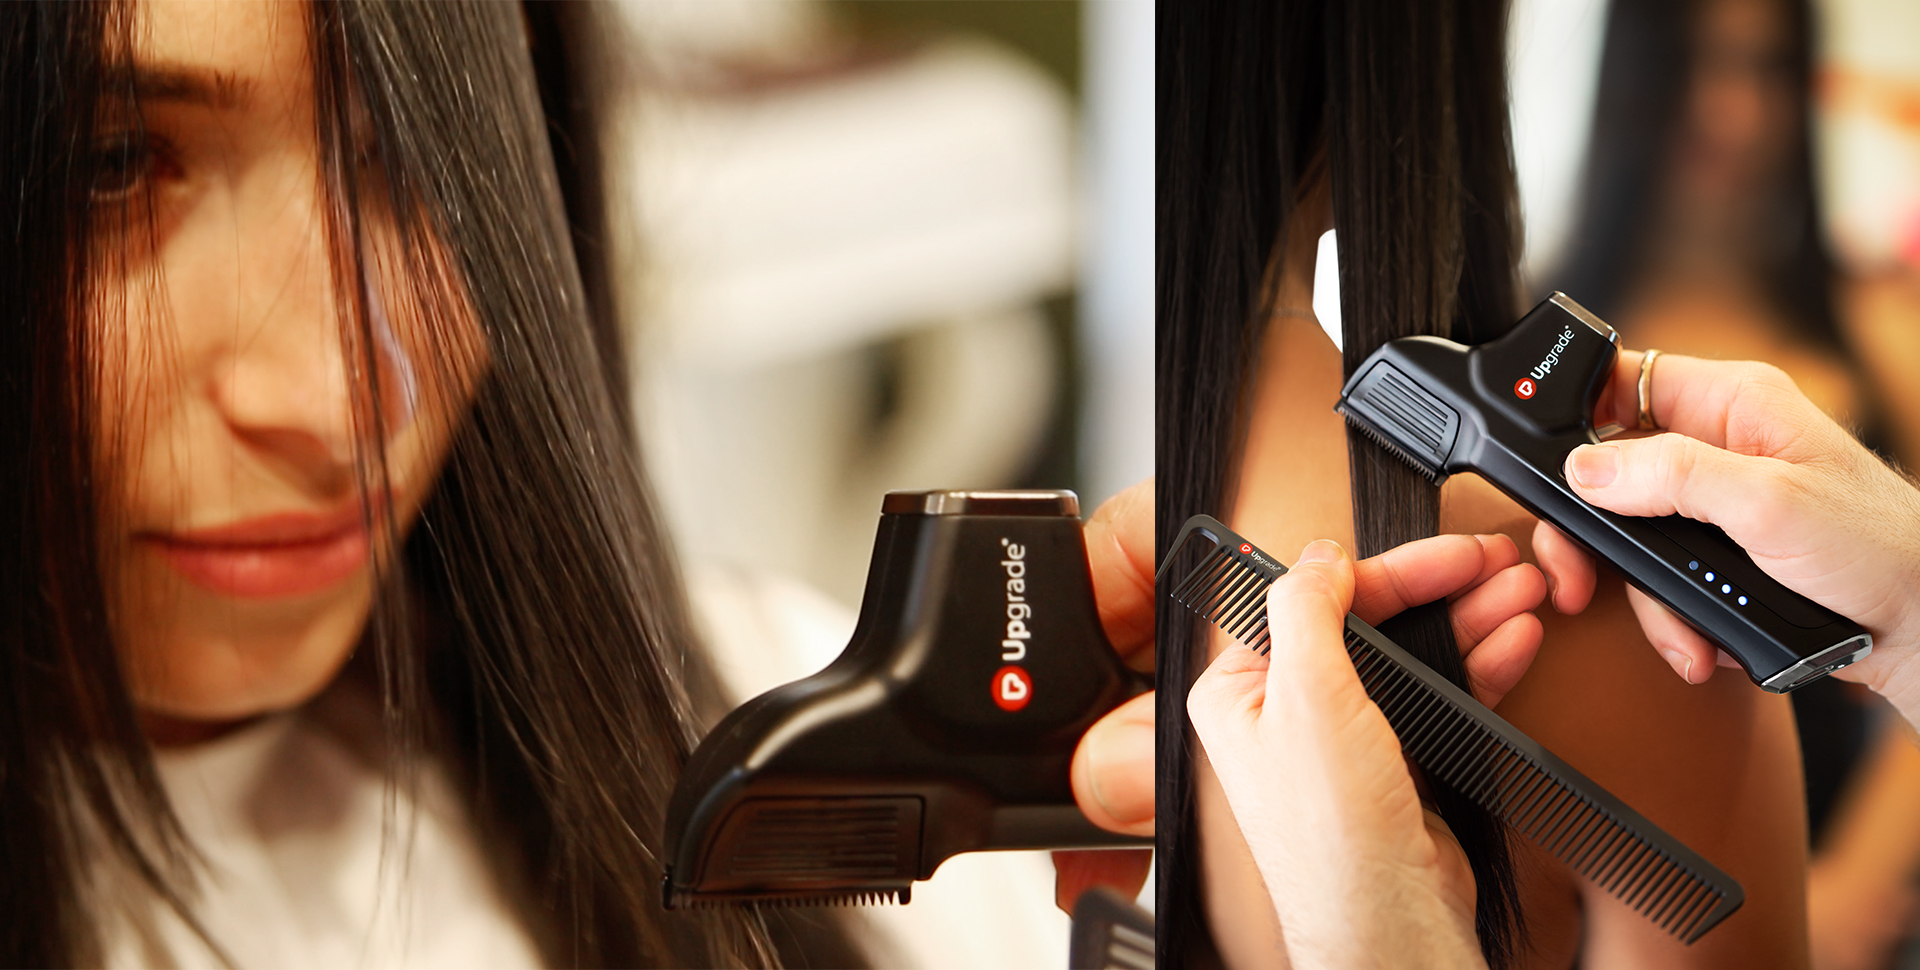 STYLER CUT THE MOST REVOLUTIONARY WAY TO CUT HAIR